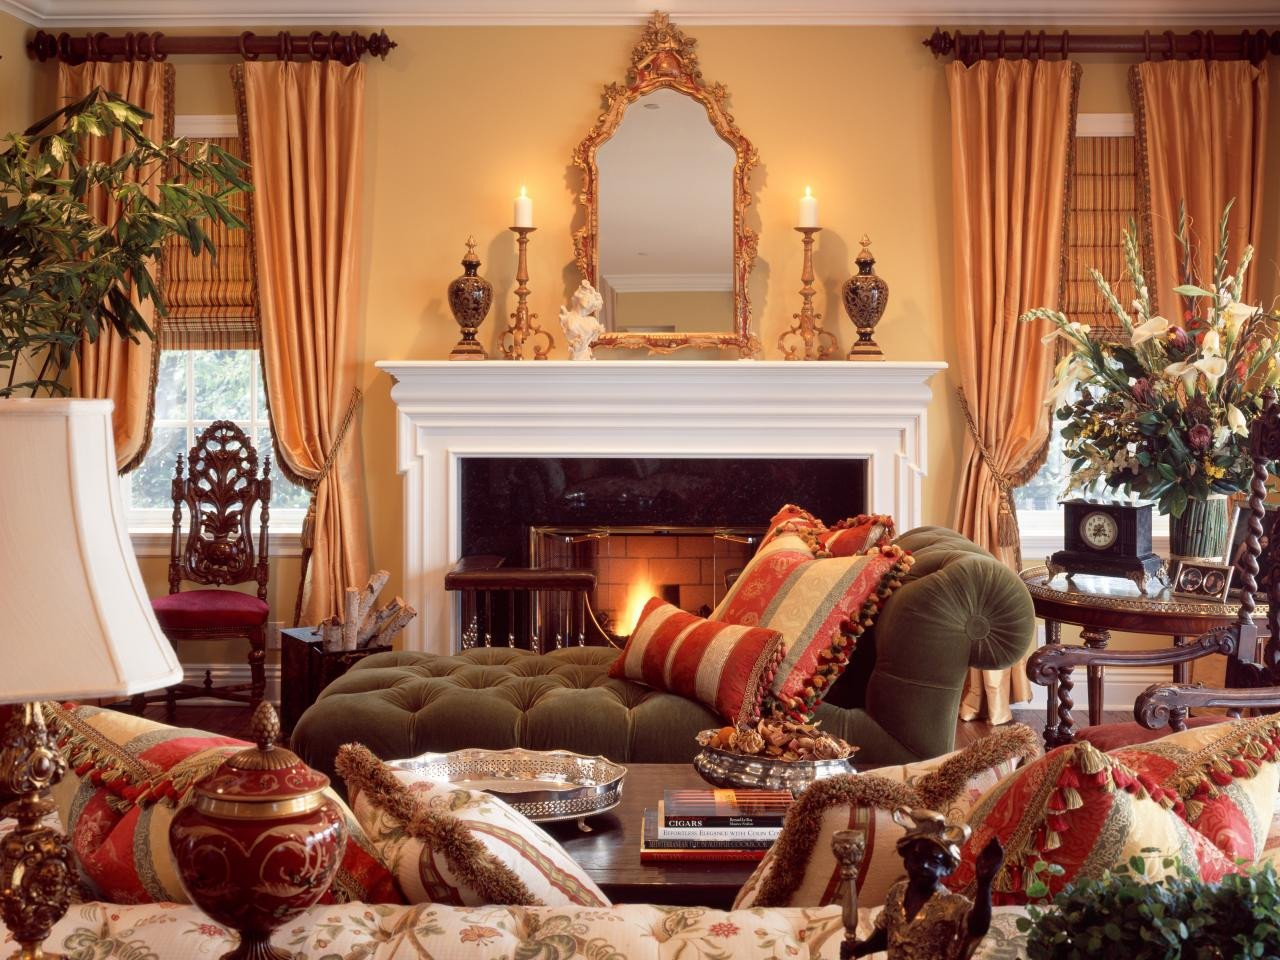 Country Living Room Decorating Ideas Traditional Style 101 From Hgtv